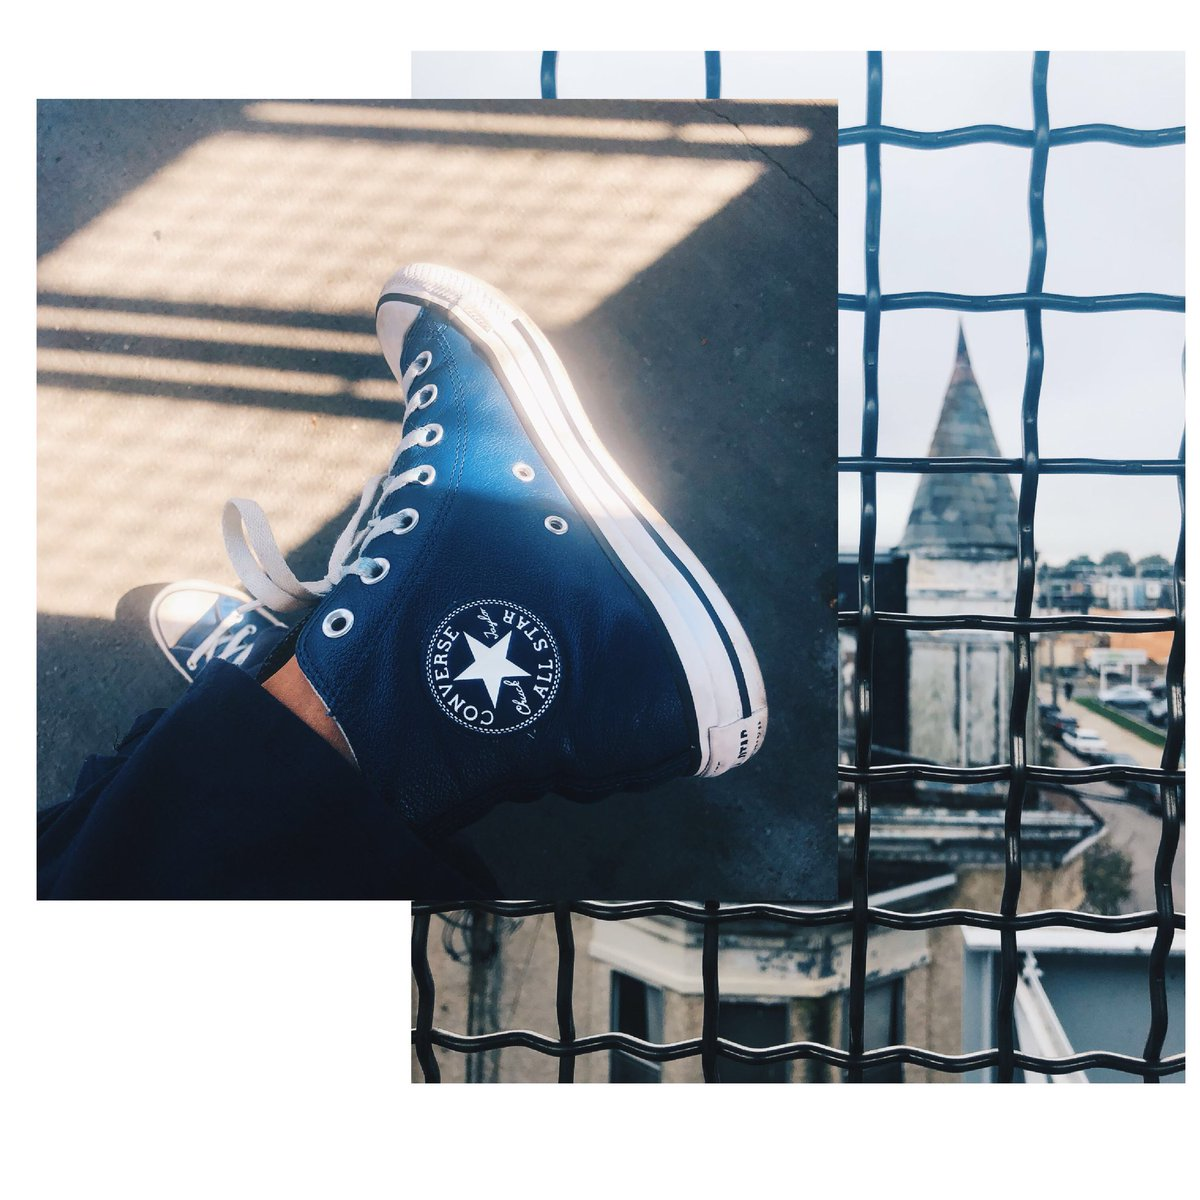 Kristle Peterkin on Twitter: New work.... #photography #photographer #photooftheday #collageart #collage @Converse #streetdreamsmag #streetphotography #fineartphotography #shotoniphone #iphonex #newwork #photoshop…